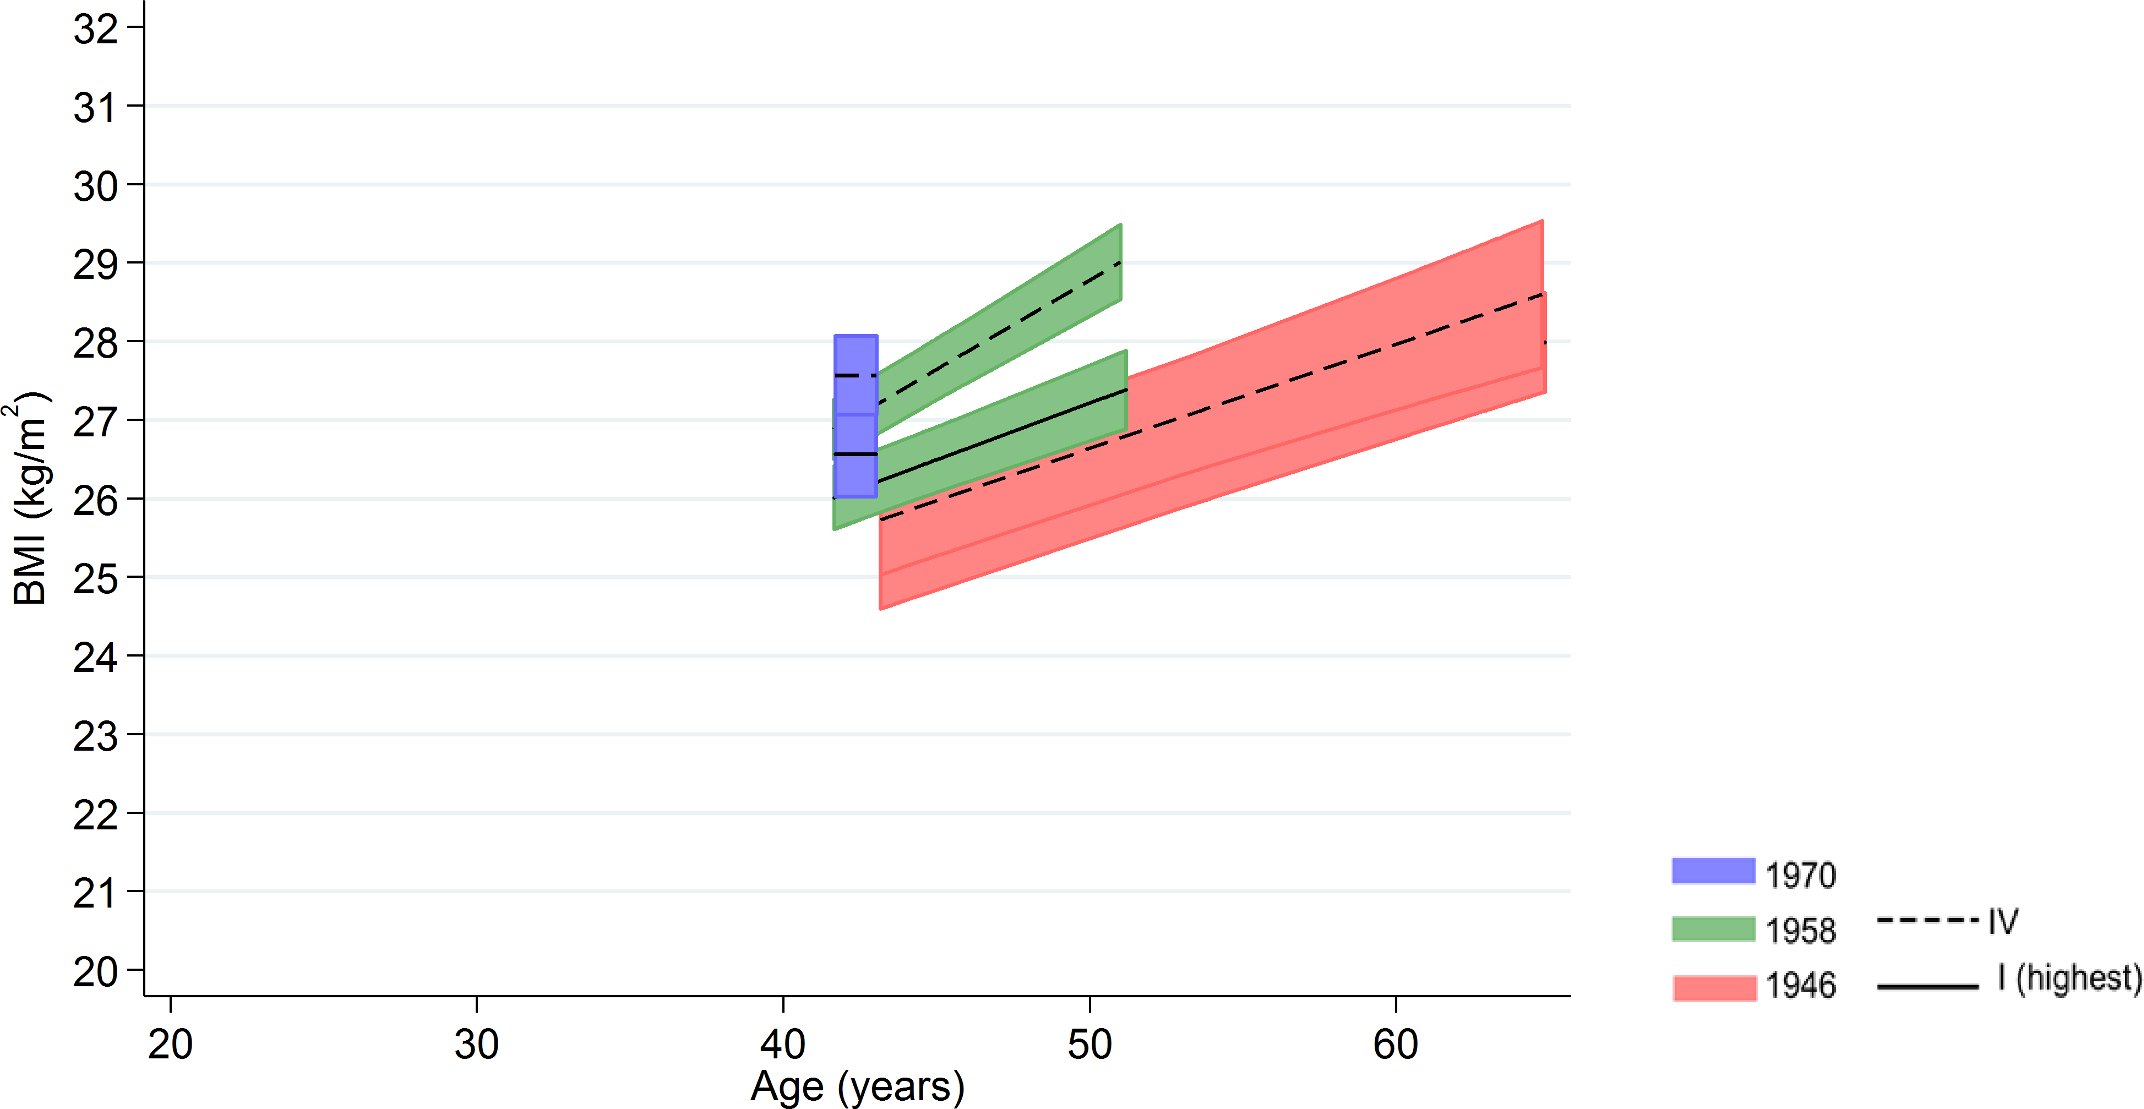 Male BMI across adulthood in relation to own social class (42/43 y) in the 1946 NSHD, 1958 NCDS, and 1970 BCS British birth cohort studies.